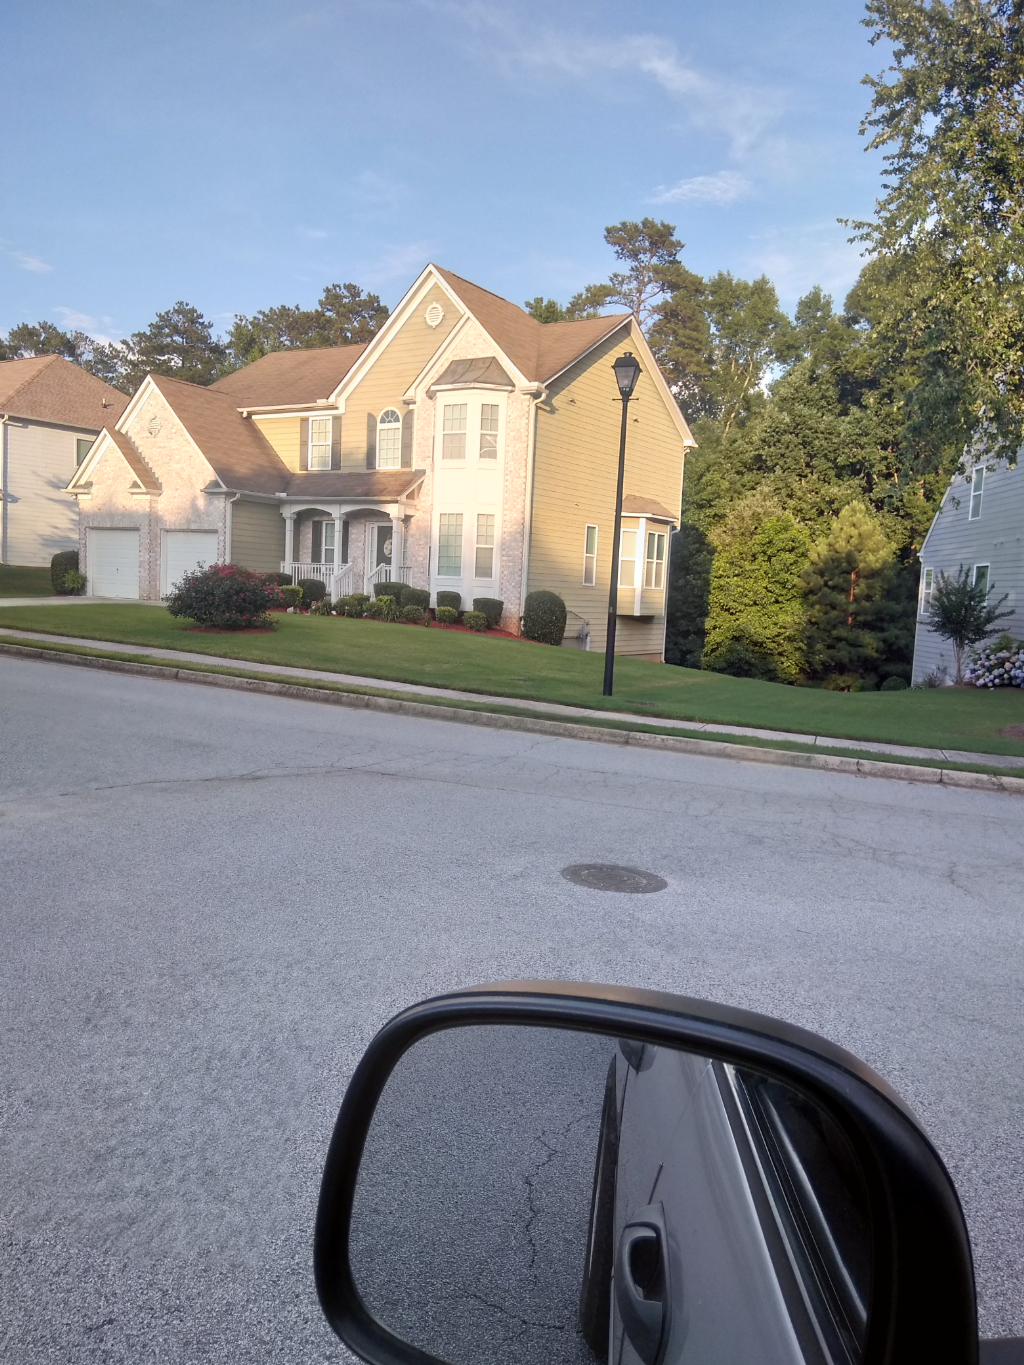 Yard mowing company in Hiram, GA, 30141